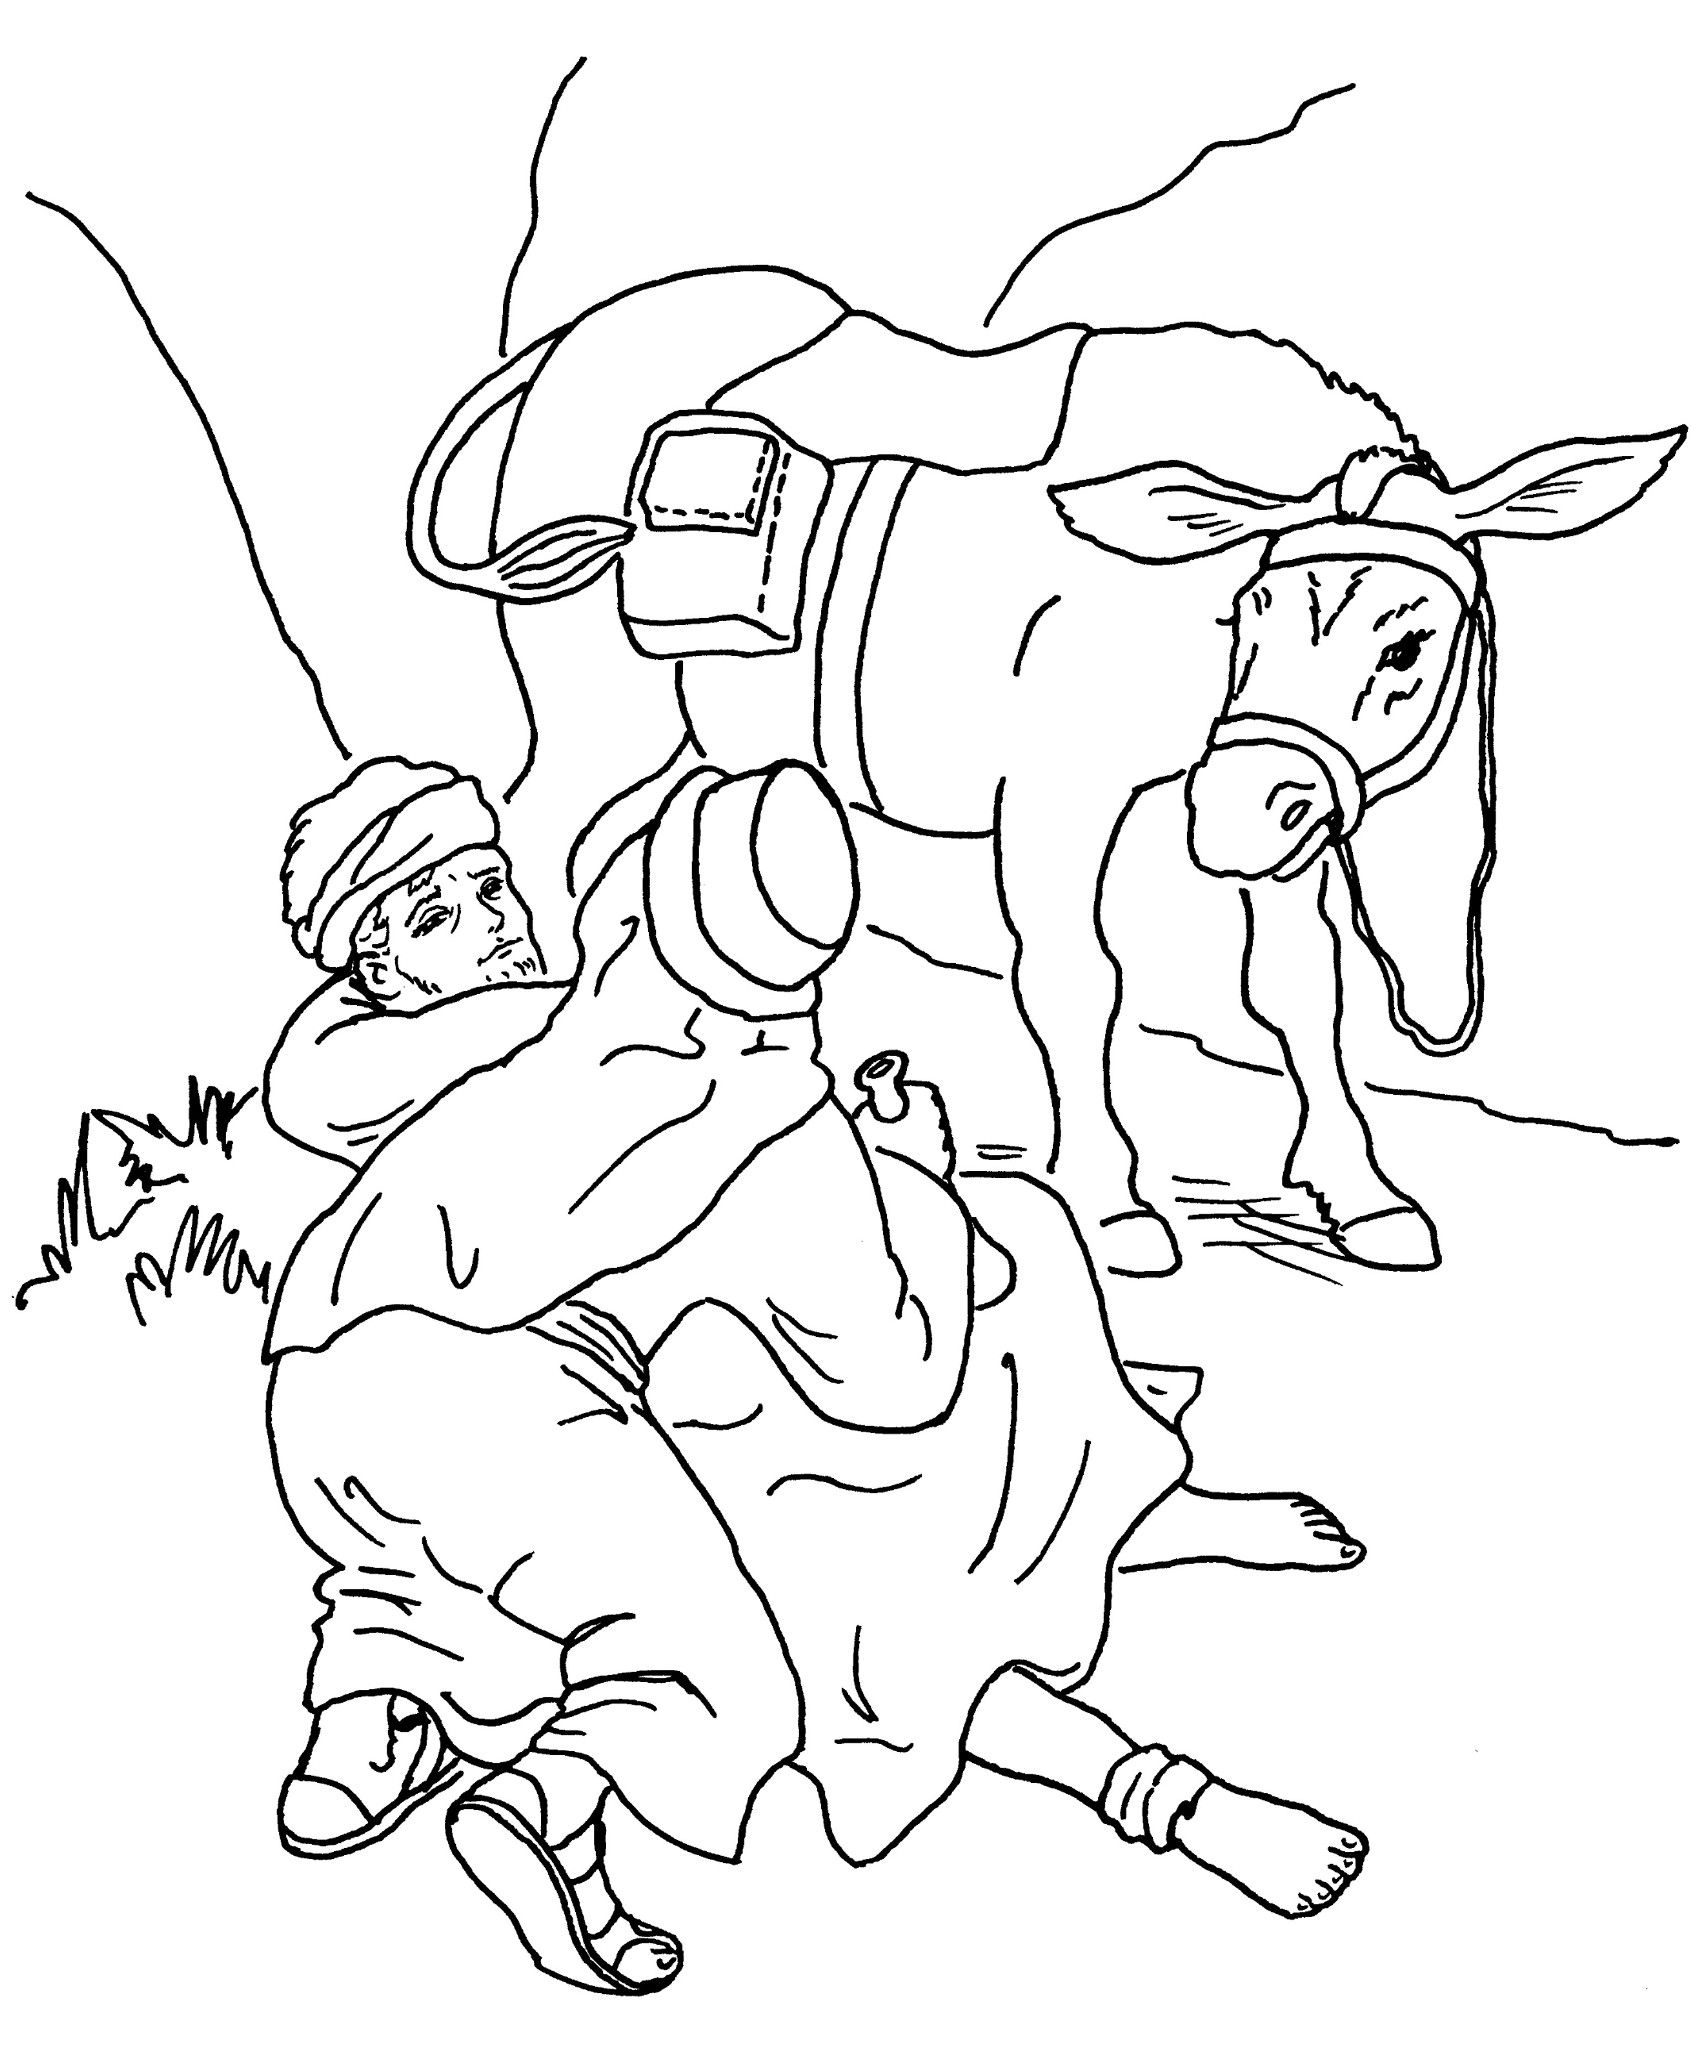 the good samaritan the good samaritan pinterest sunday school - Good Samaritan Coloring Pages